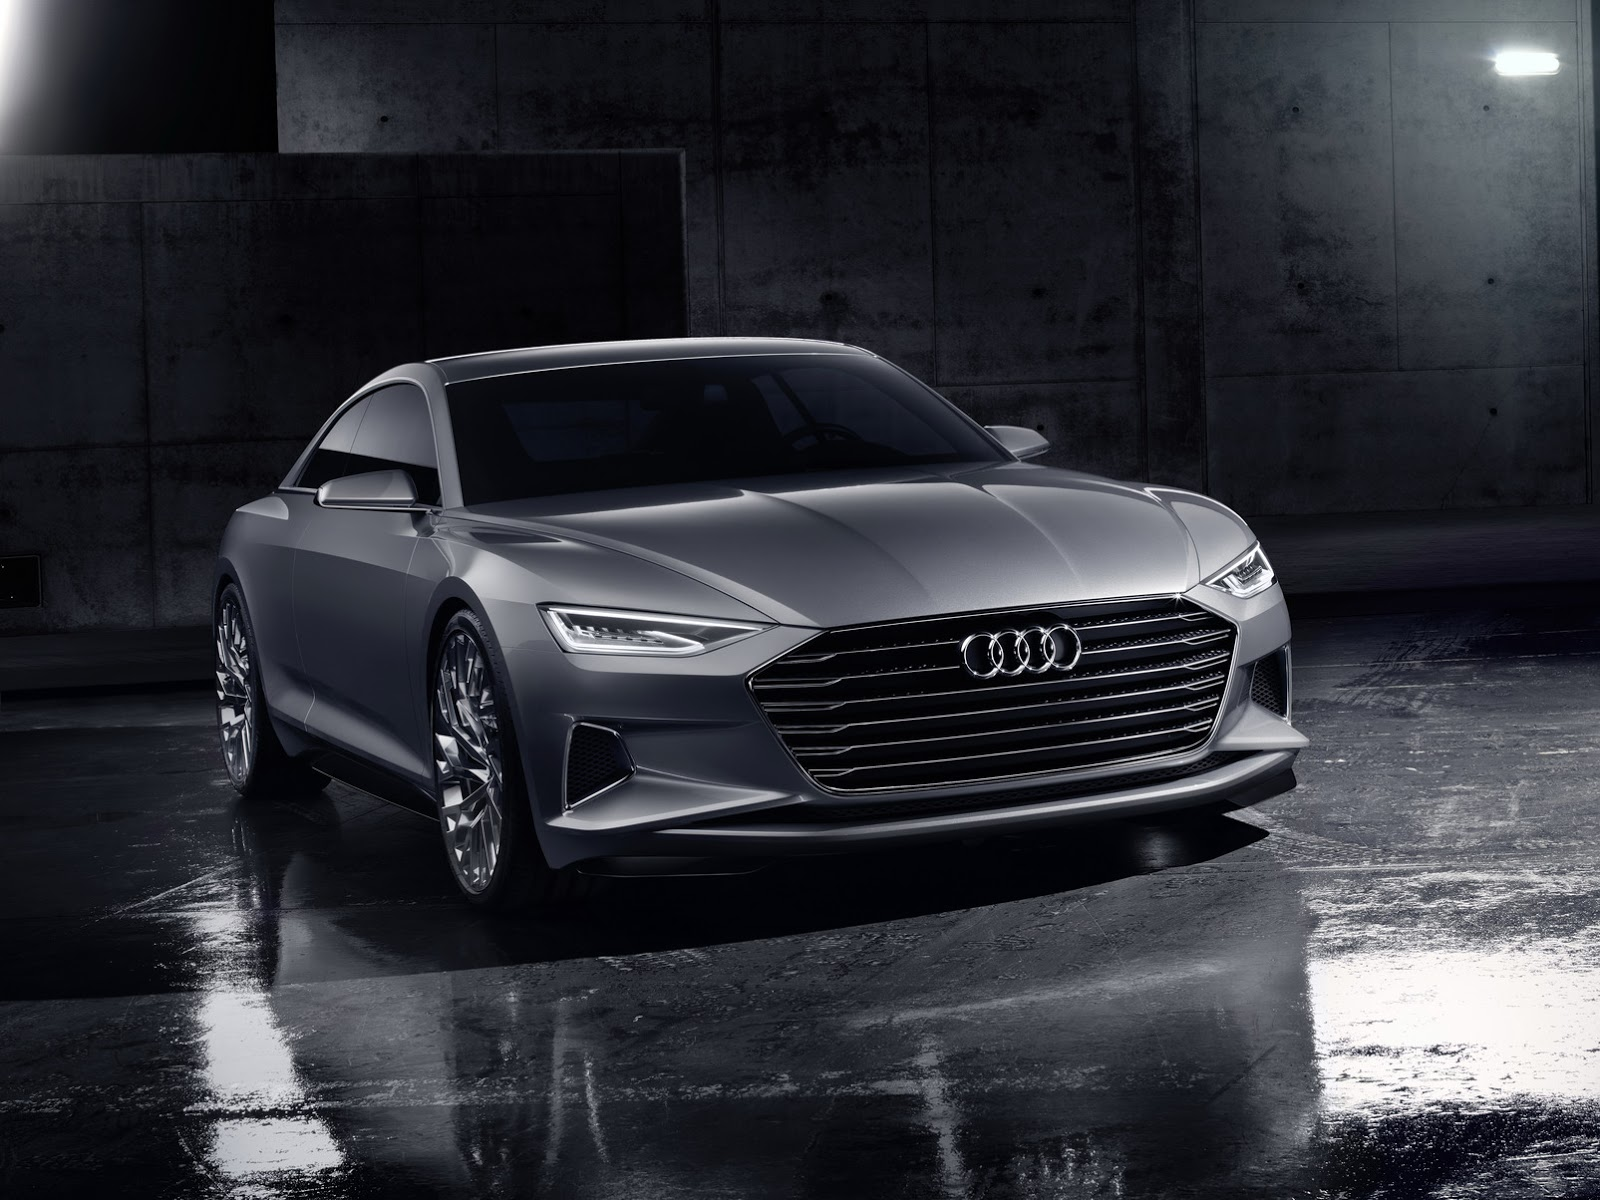 Audi Prologue Concept Is an S-Class Coupe Rival in the Making